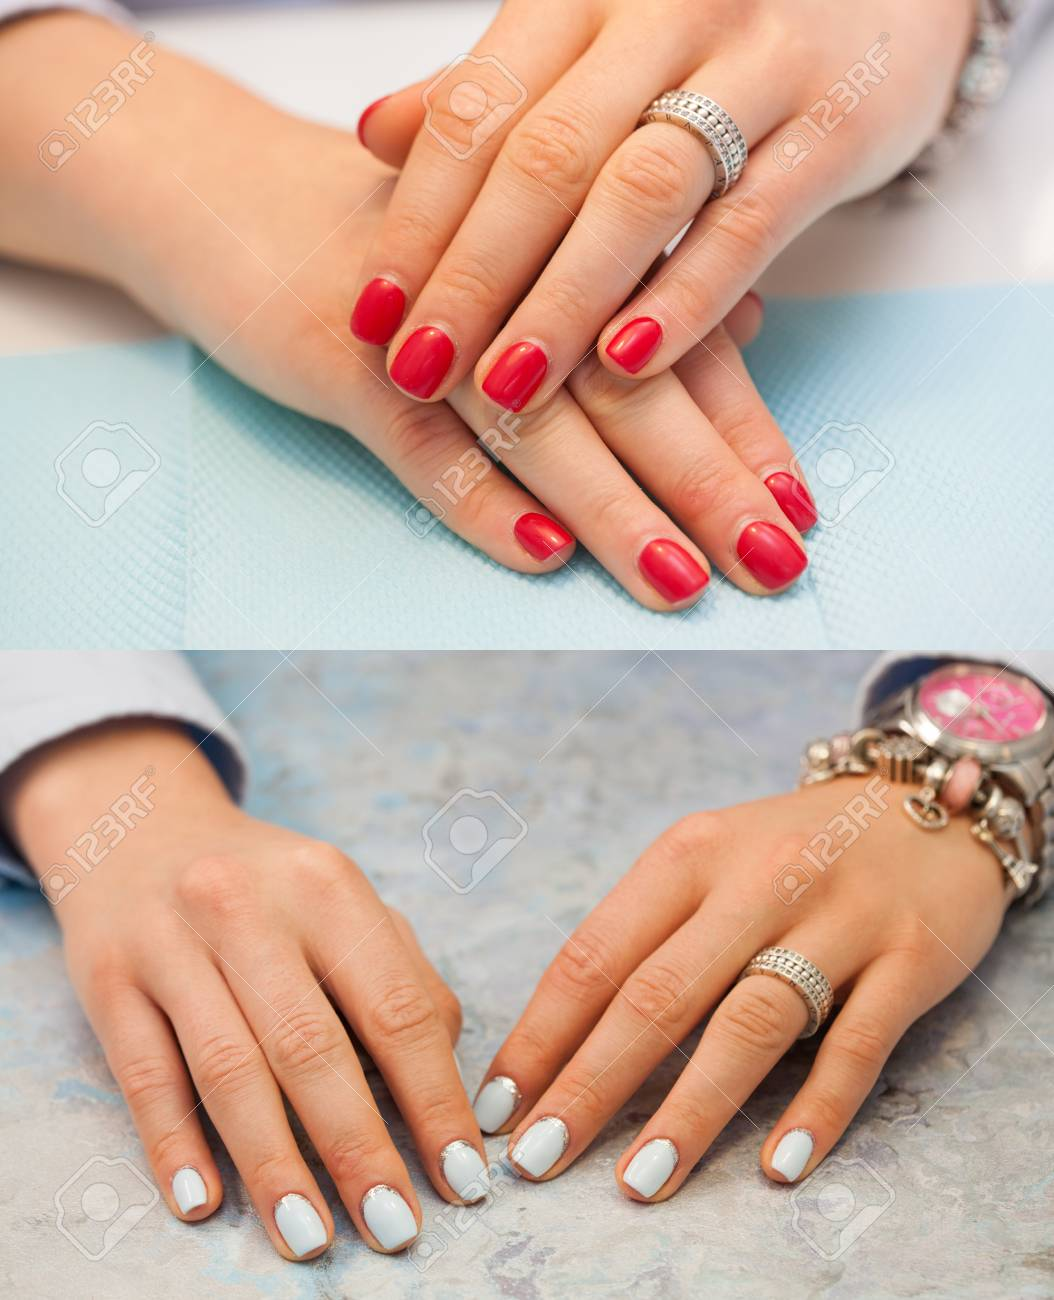 Collage Of Manicure Female Hands With Red Nails The Light Blue